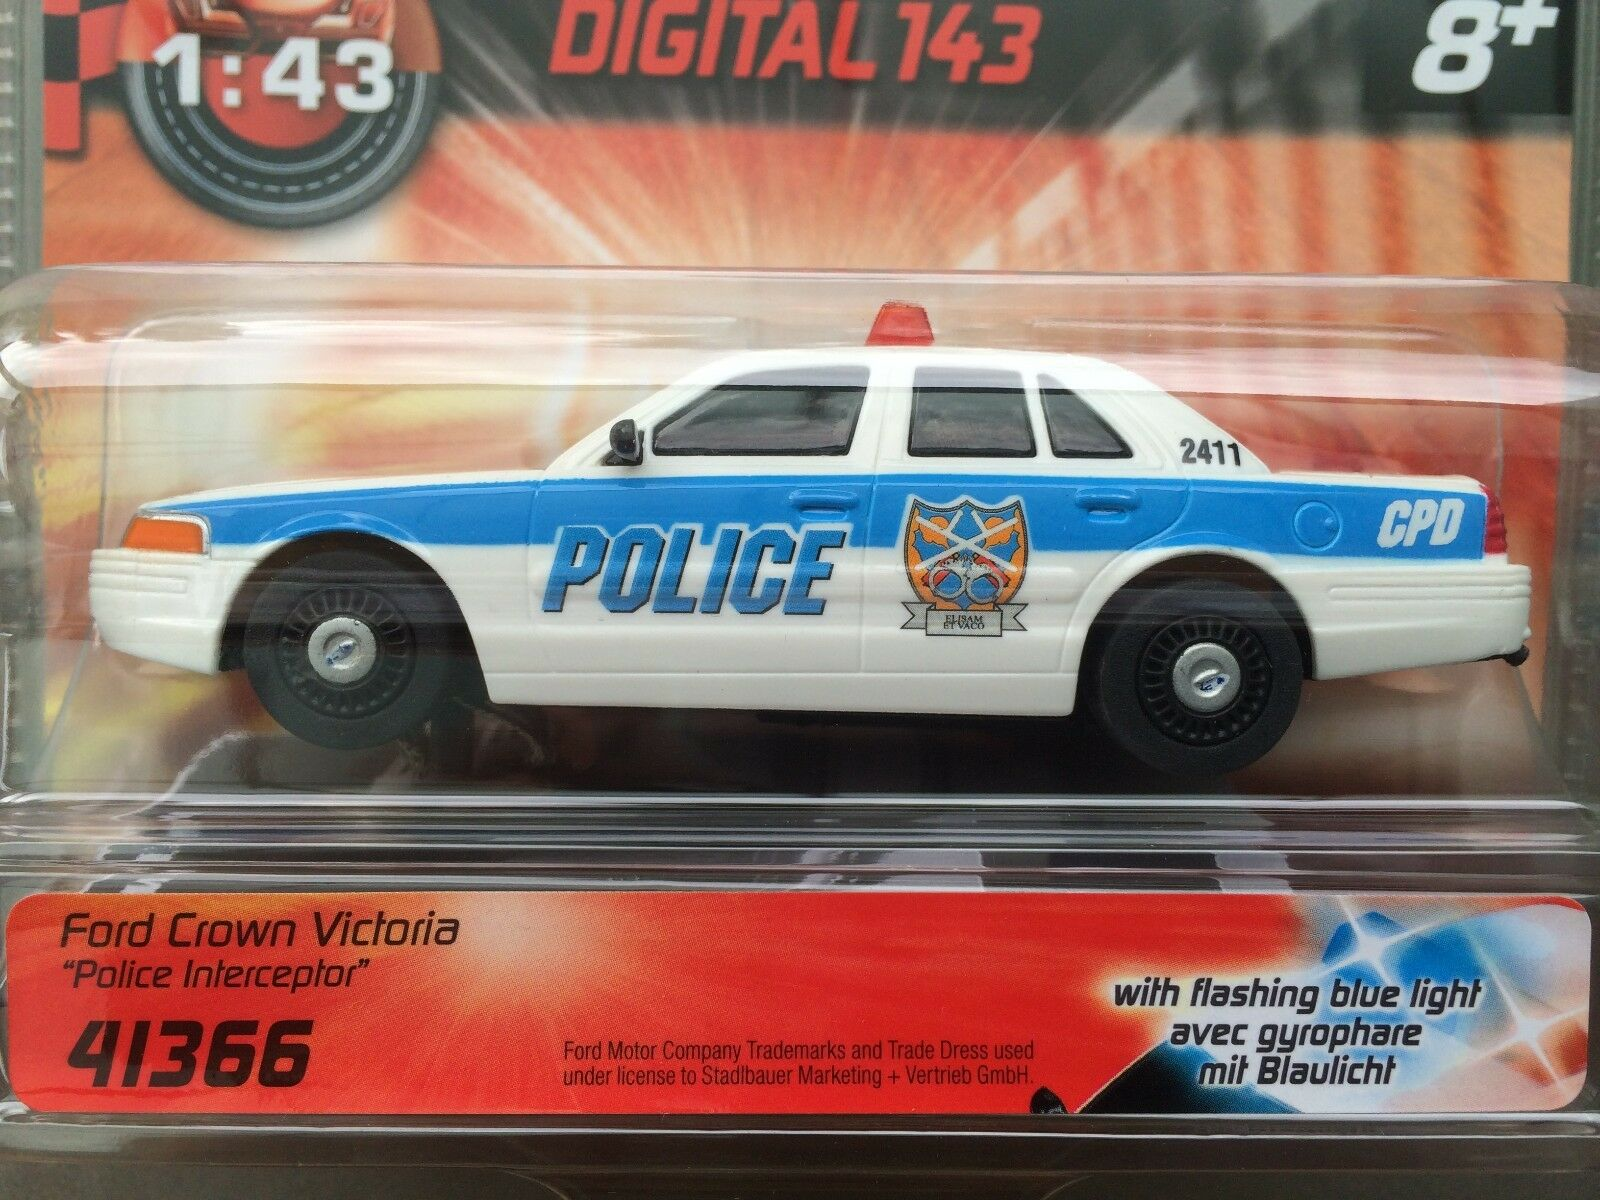 Carrera Digital 143 41366 Ford Crown Victoria   Police Interceptor   Flashing